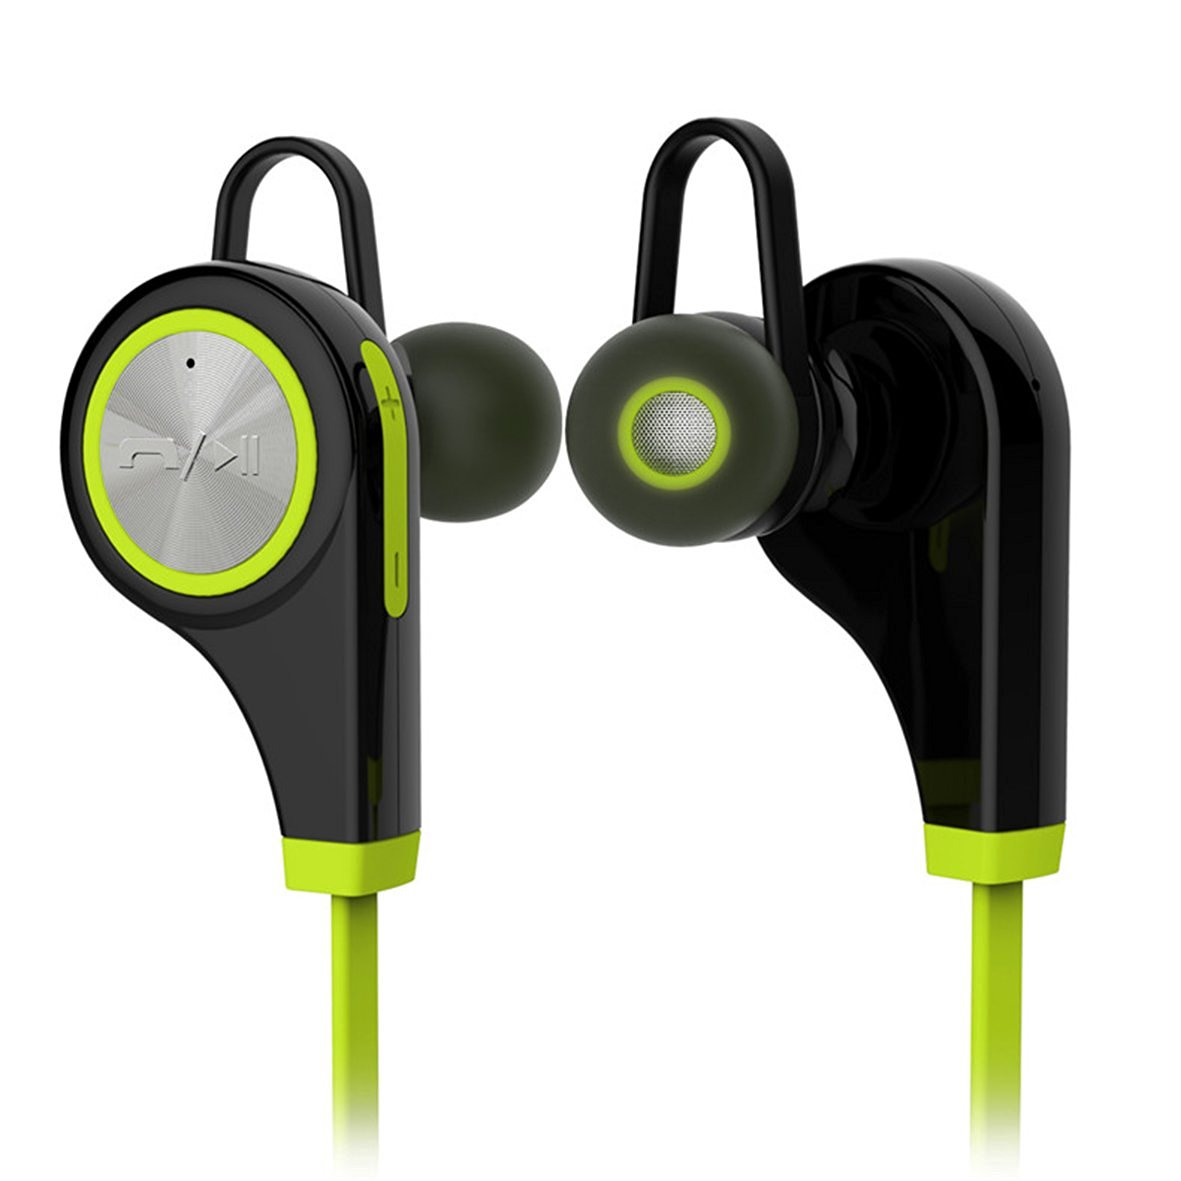 In-Ear Sport Bluetooth Headphone Wireless Sweatproof Stereo Earbud Headset Strong Heavy Bass Crystal Clear Sound Ergonomic Comfort Secure Fit, iPhone, ...